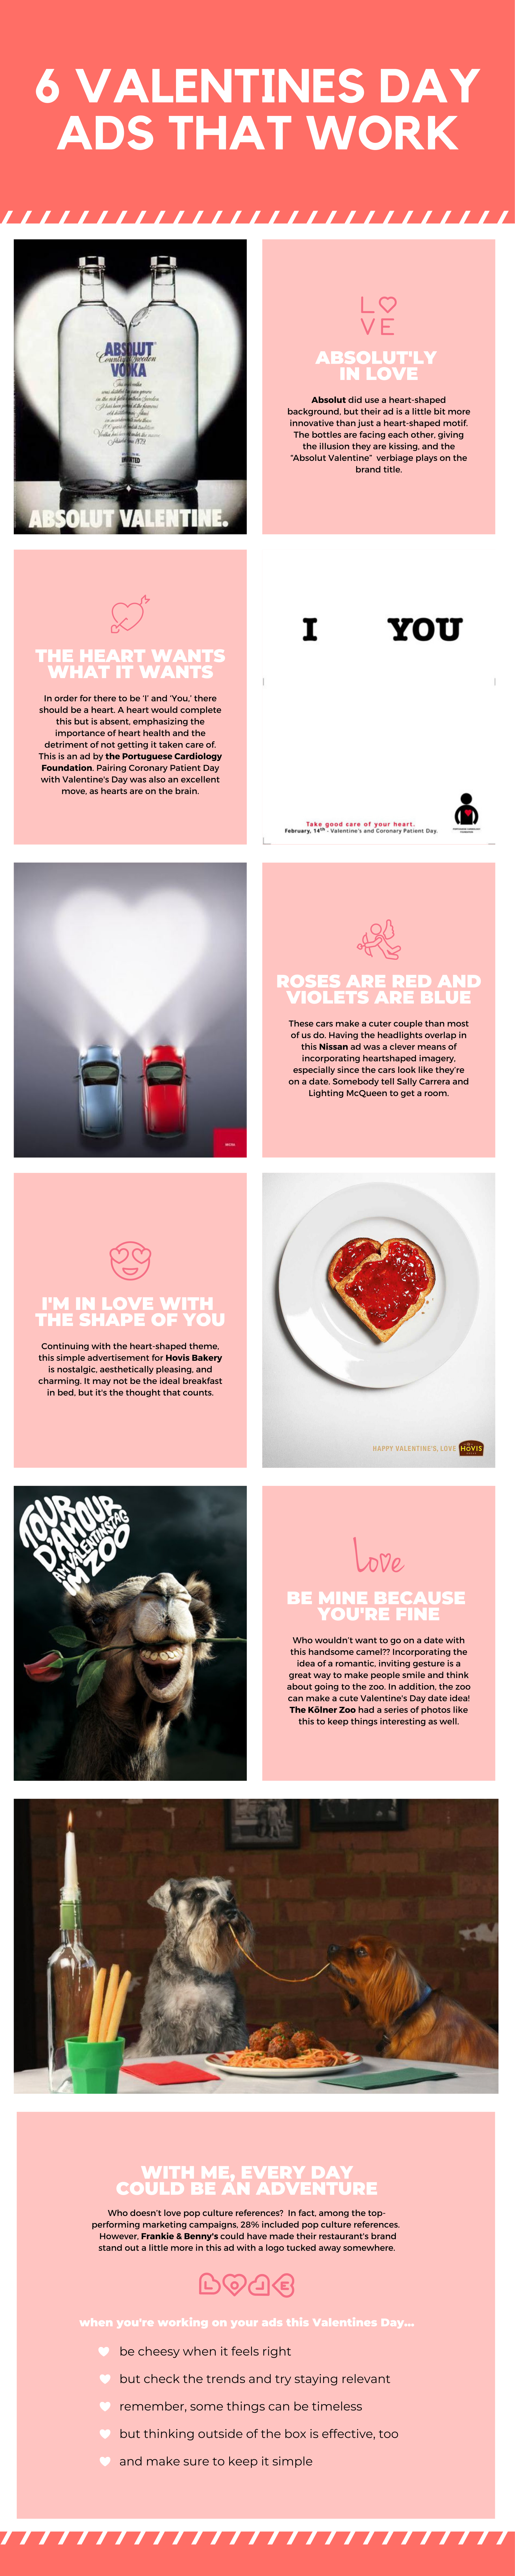 snyder-valentines day ads that work